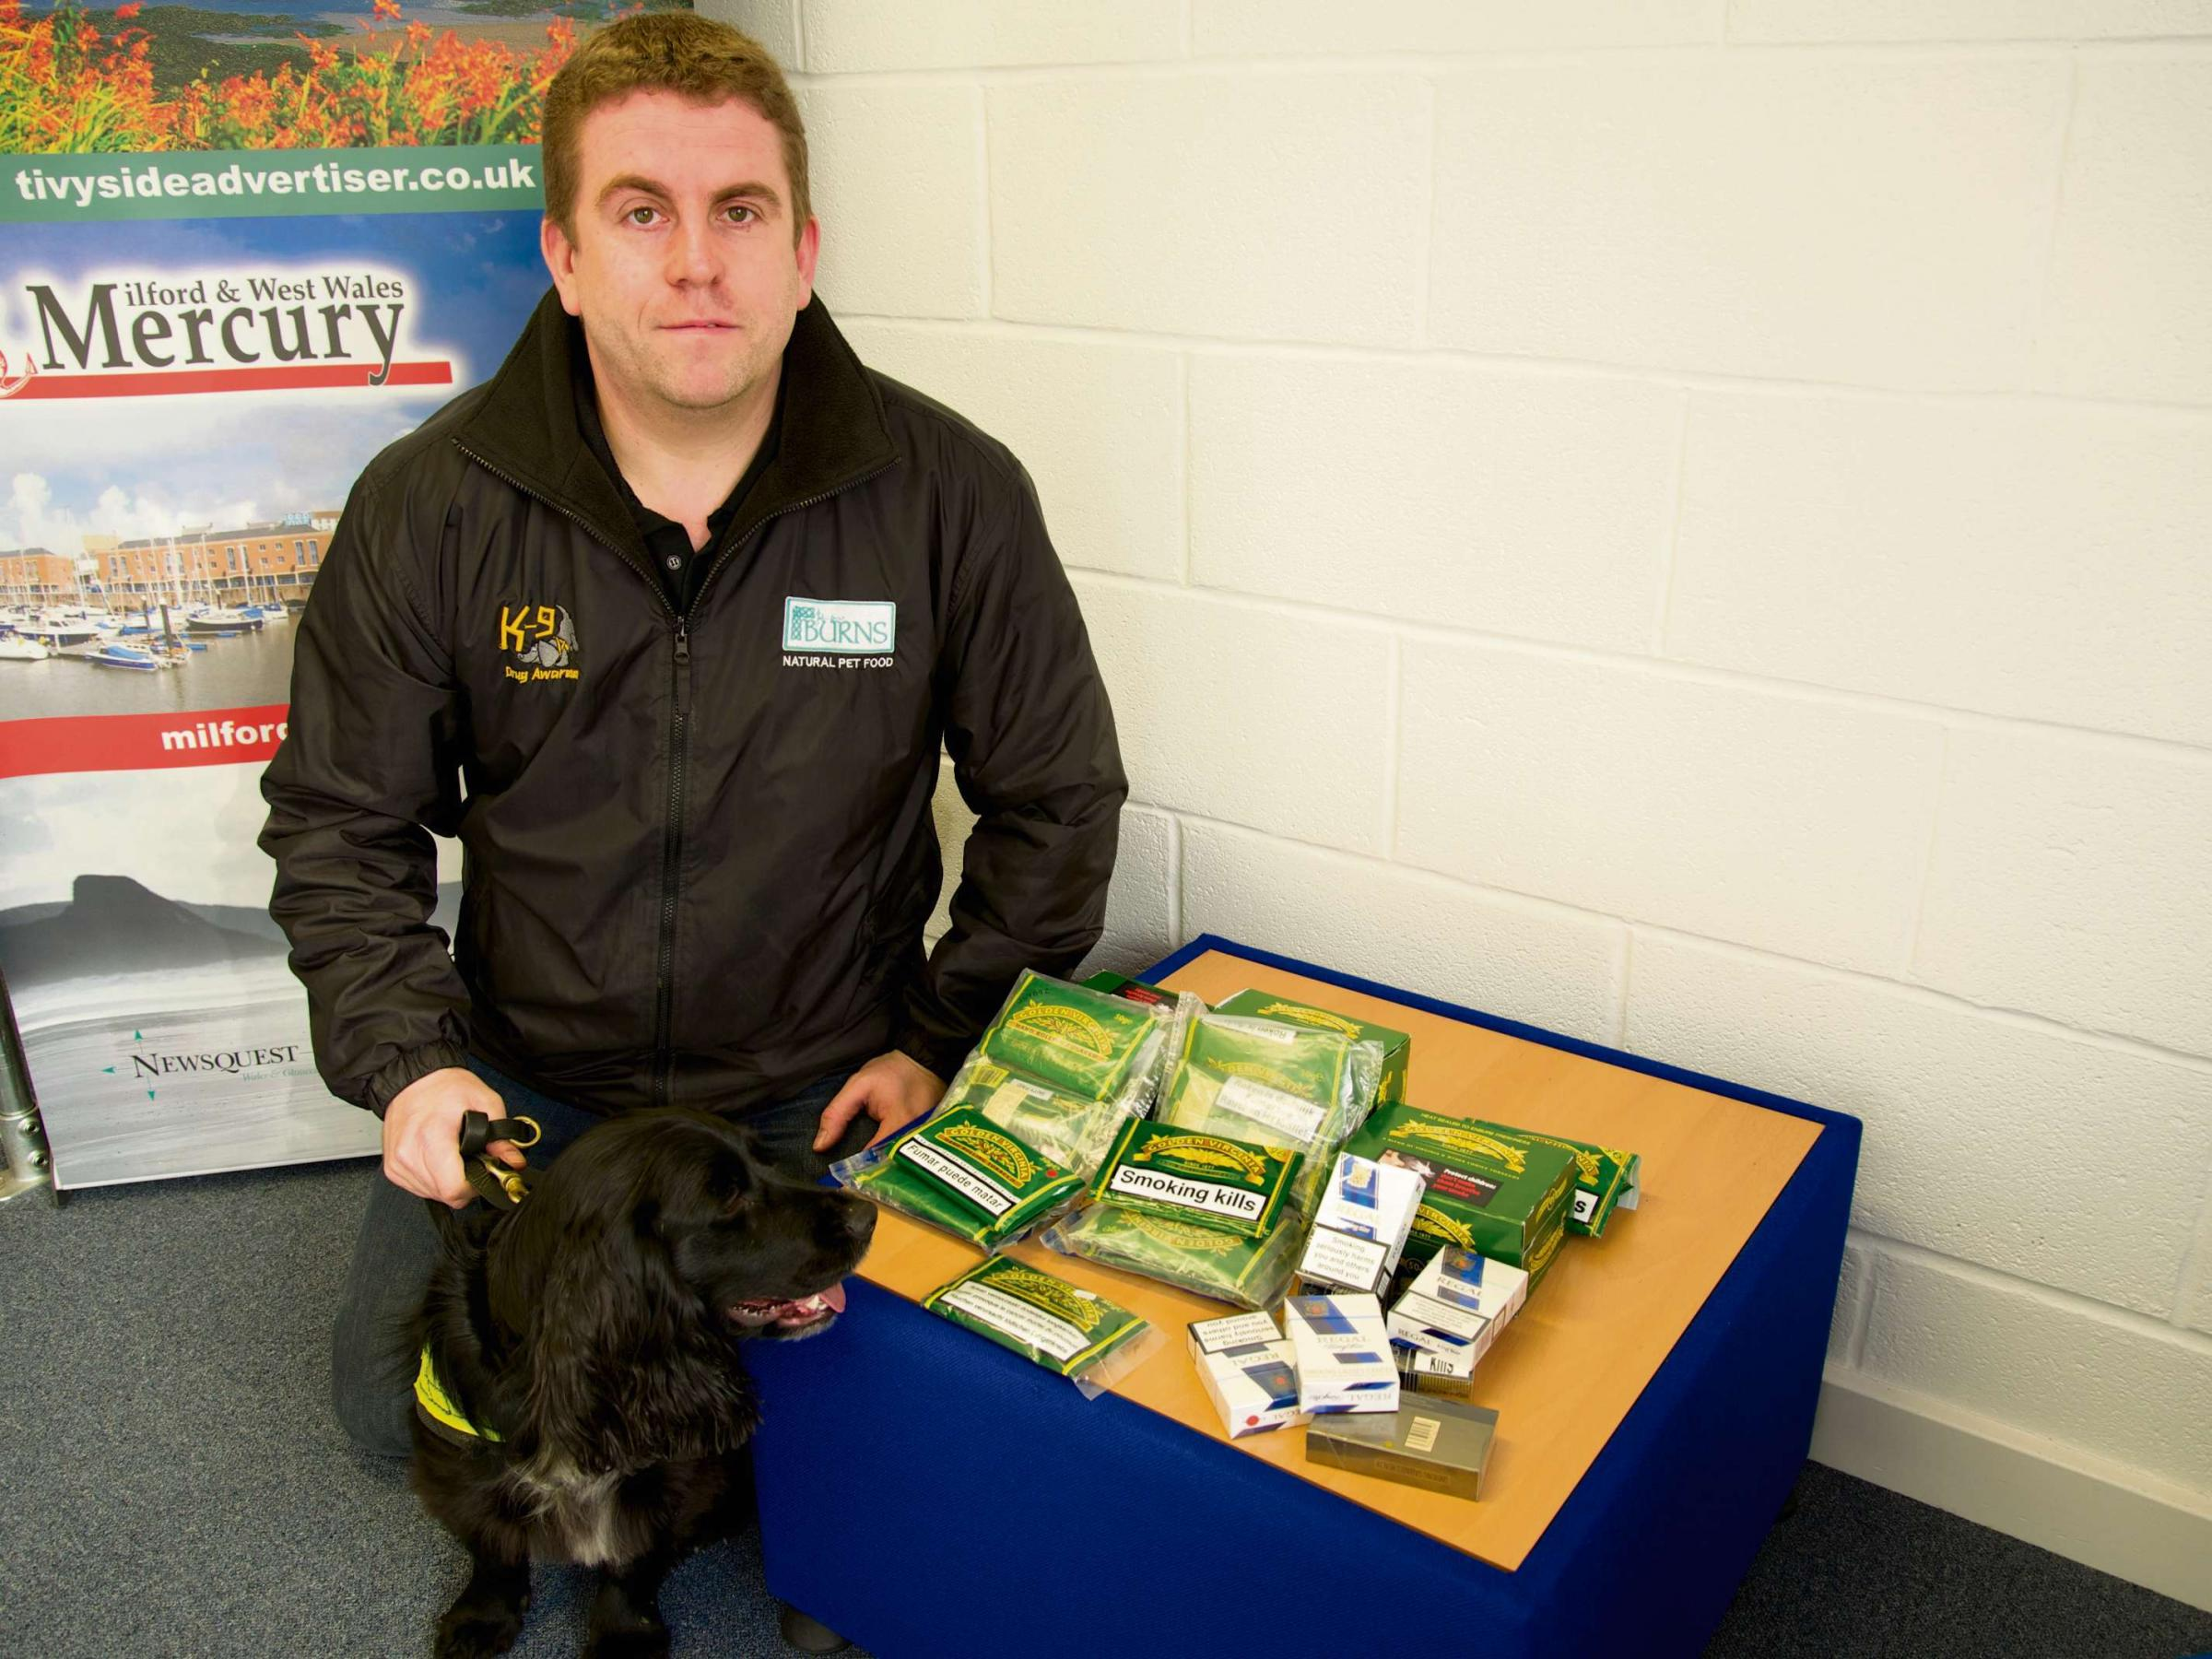 Drugs dog handler warns of counterfeit tobacco dangers